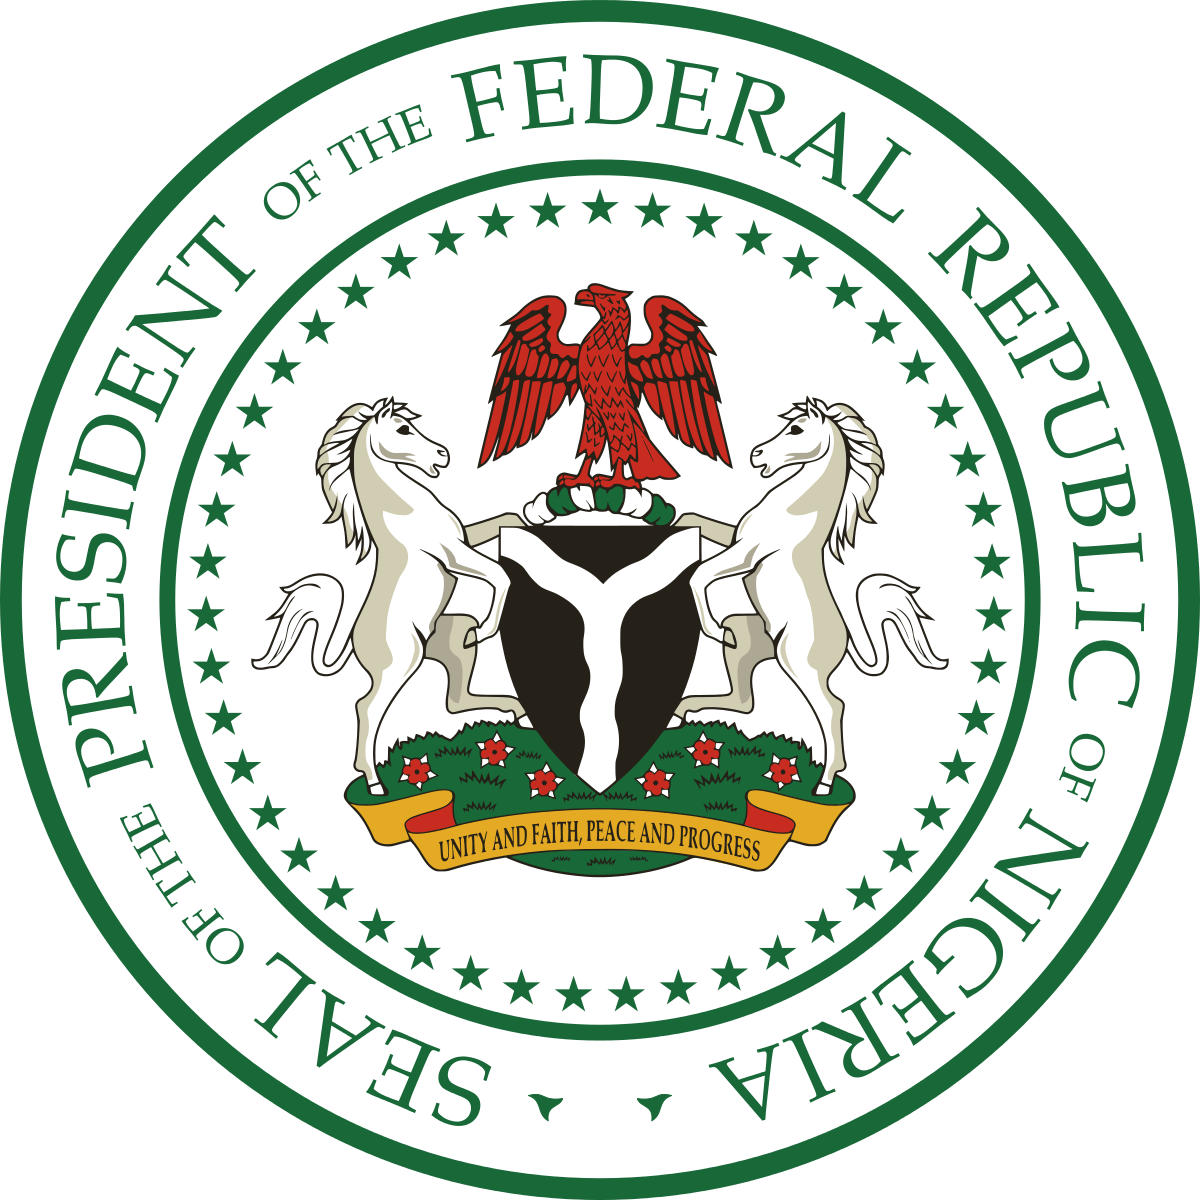 Coronavirus - Nigeria: Statement by His Excellency, Muhammadu Buhari, President of the Federal Republic of Nigeria (March 26, 2020)